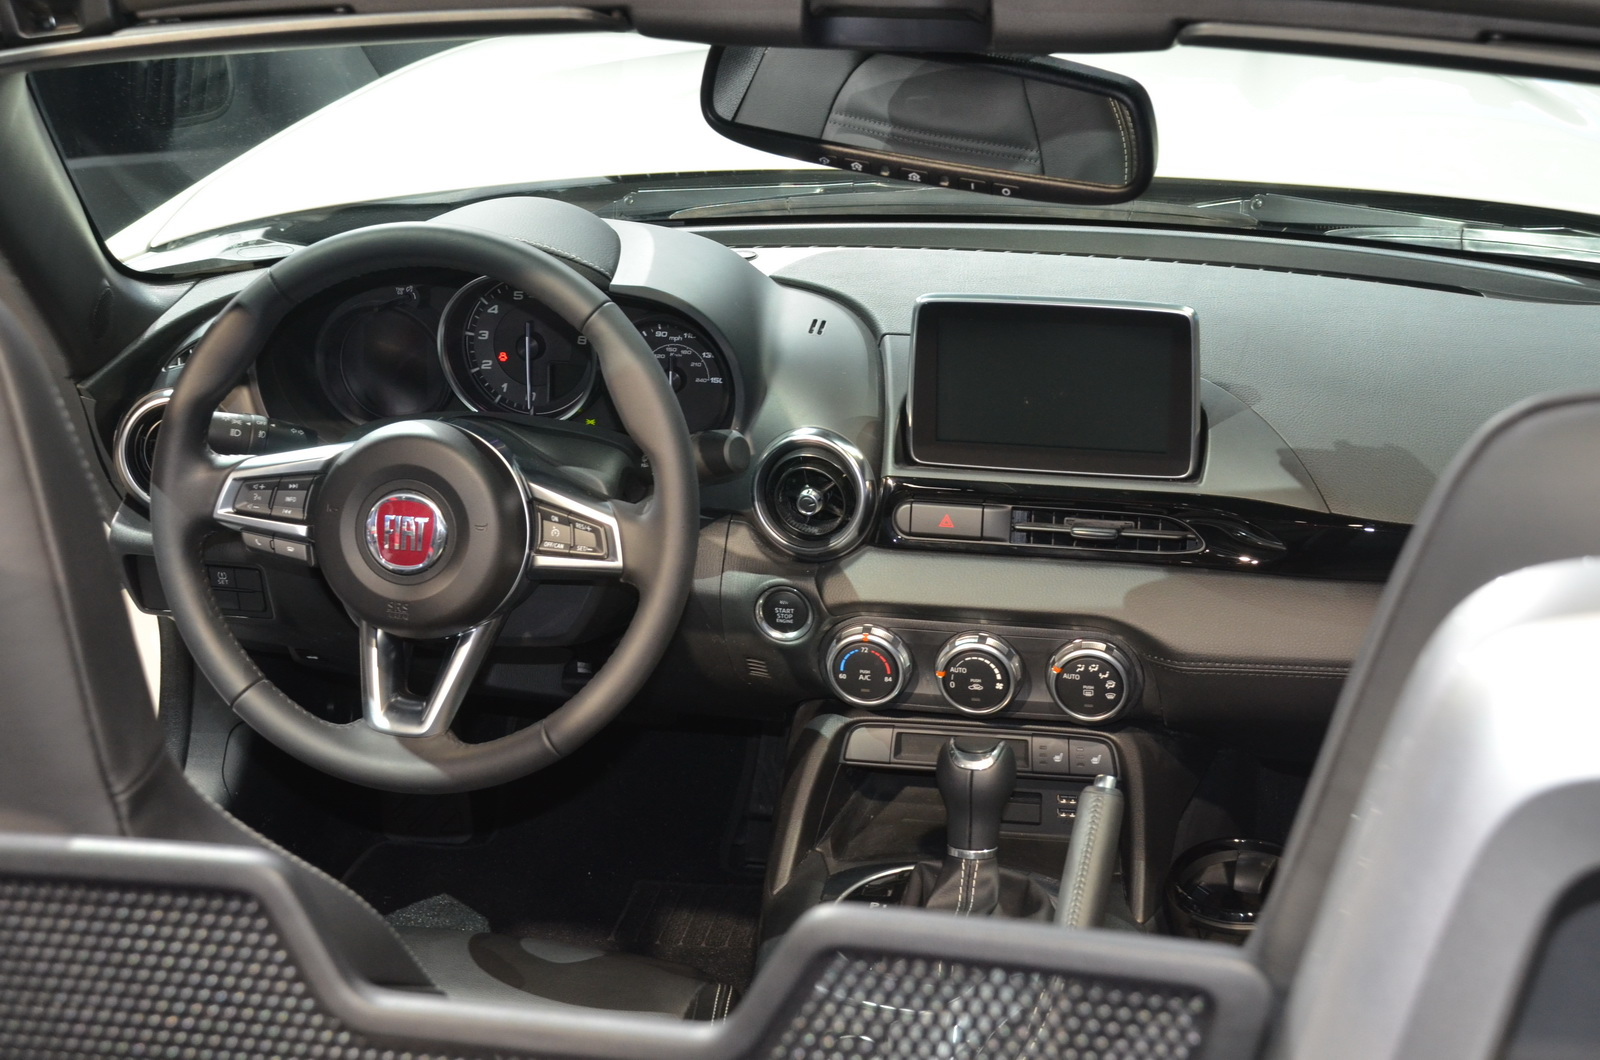 stunning-design-of-the-black-dash-and-black-stering-wheel-as-the-fiat-124-spider-2016-interior